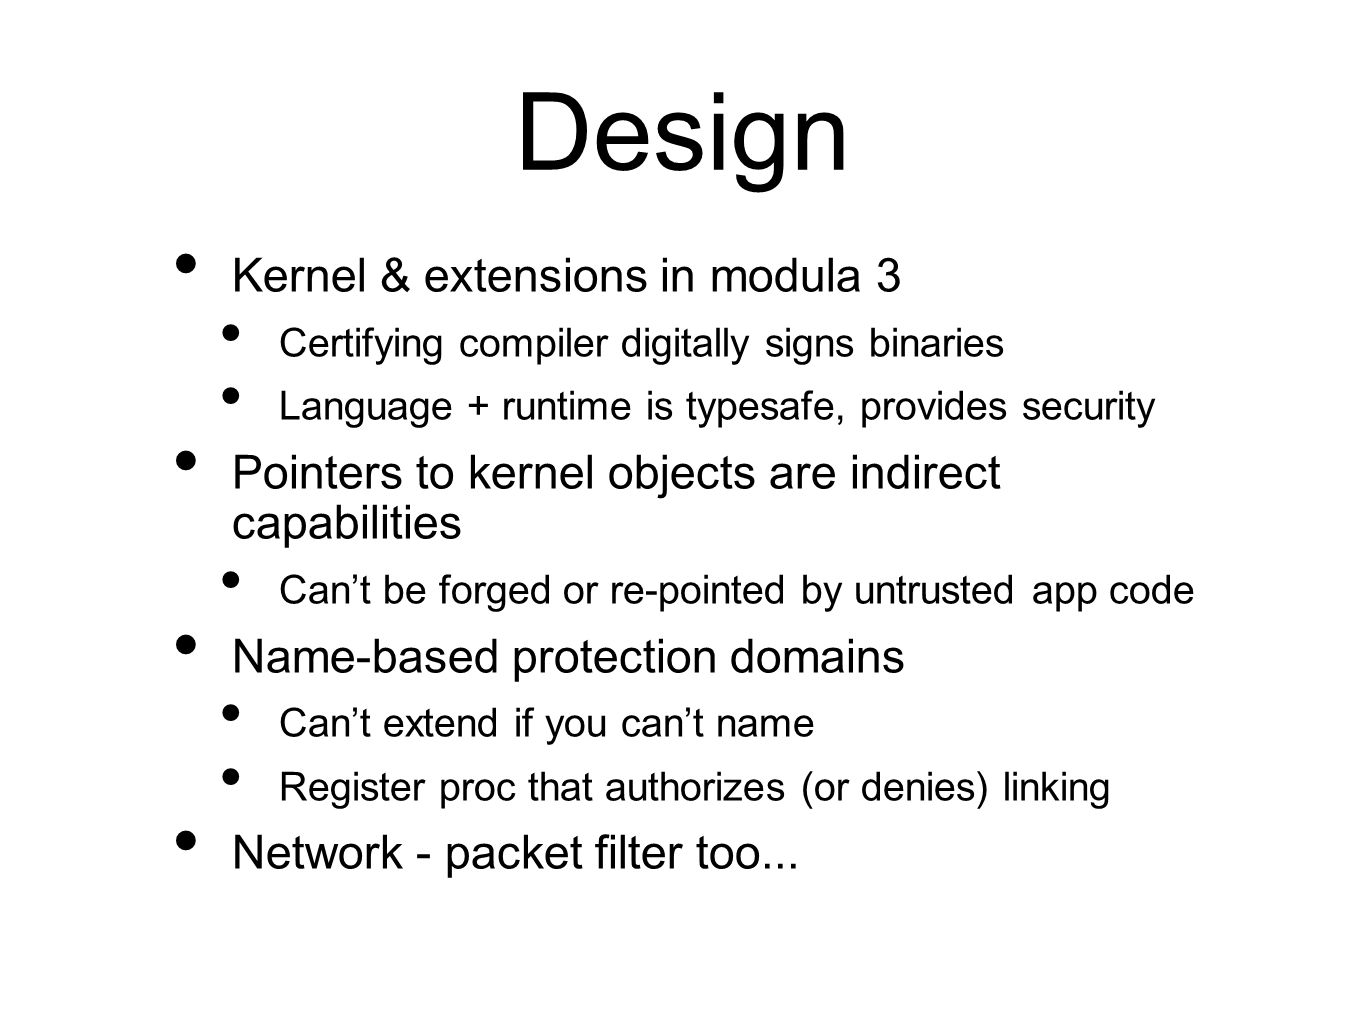 Design Kernel & extensions in modula 3 Certifying compiler digitally signs binaries Language + runtime is typesafe, provides security Pointers to kernel objects are indirect capabilities Can't be forged or re-pointed by untrusted app code Name-based protection domains Can't extend if you can't name Register proc that authorizes (or denies) linking Network - packet filter too...